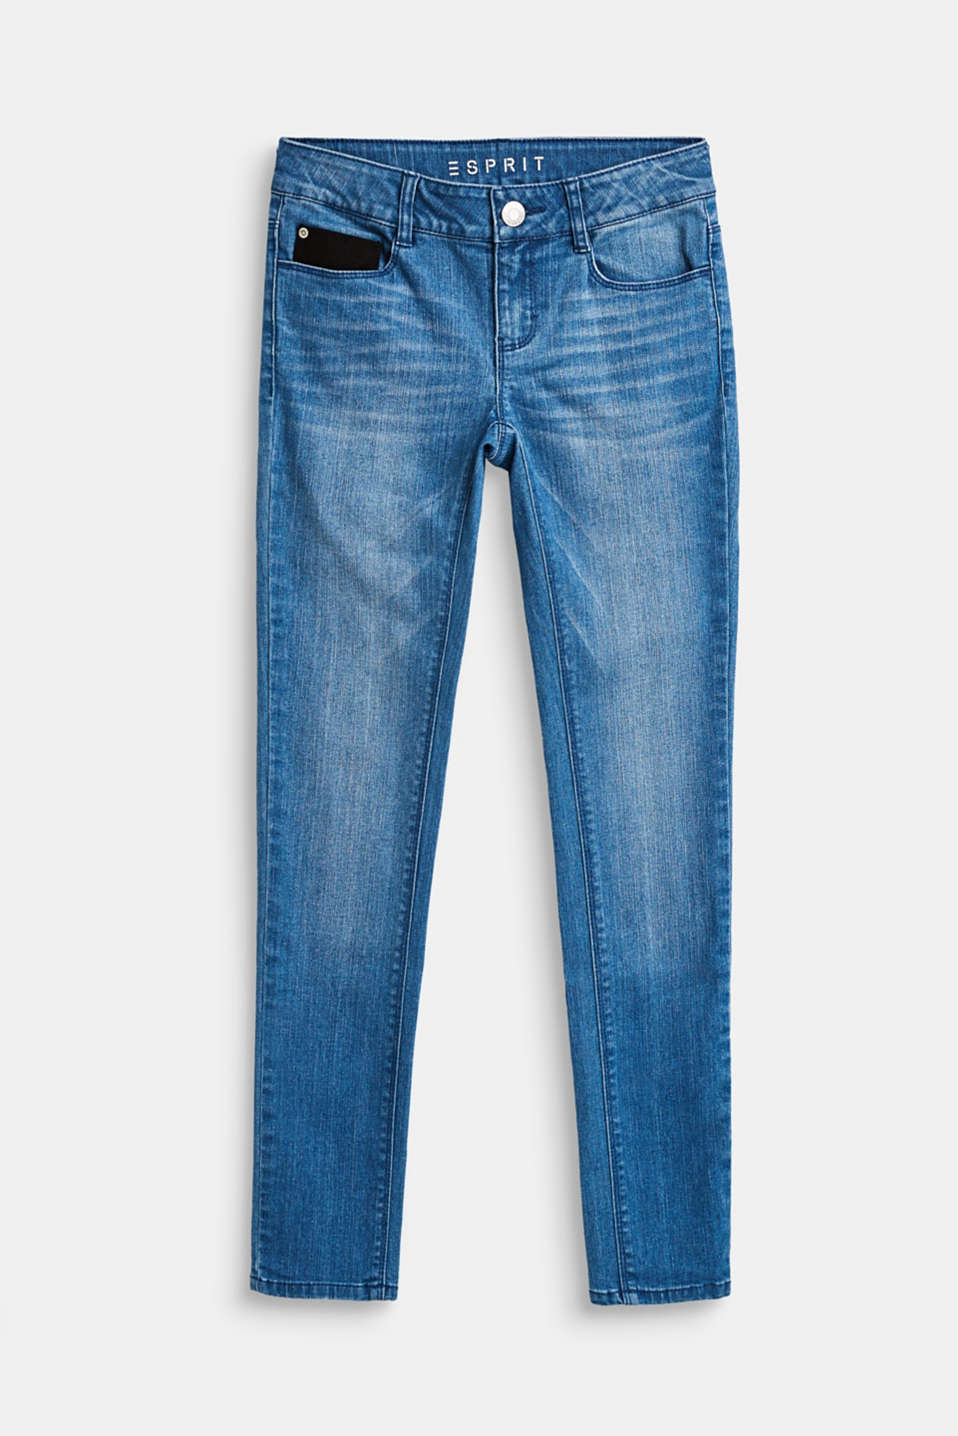 Esprit - Stretch jeans with a faux leather pocket